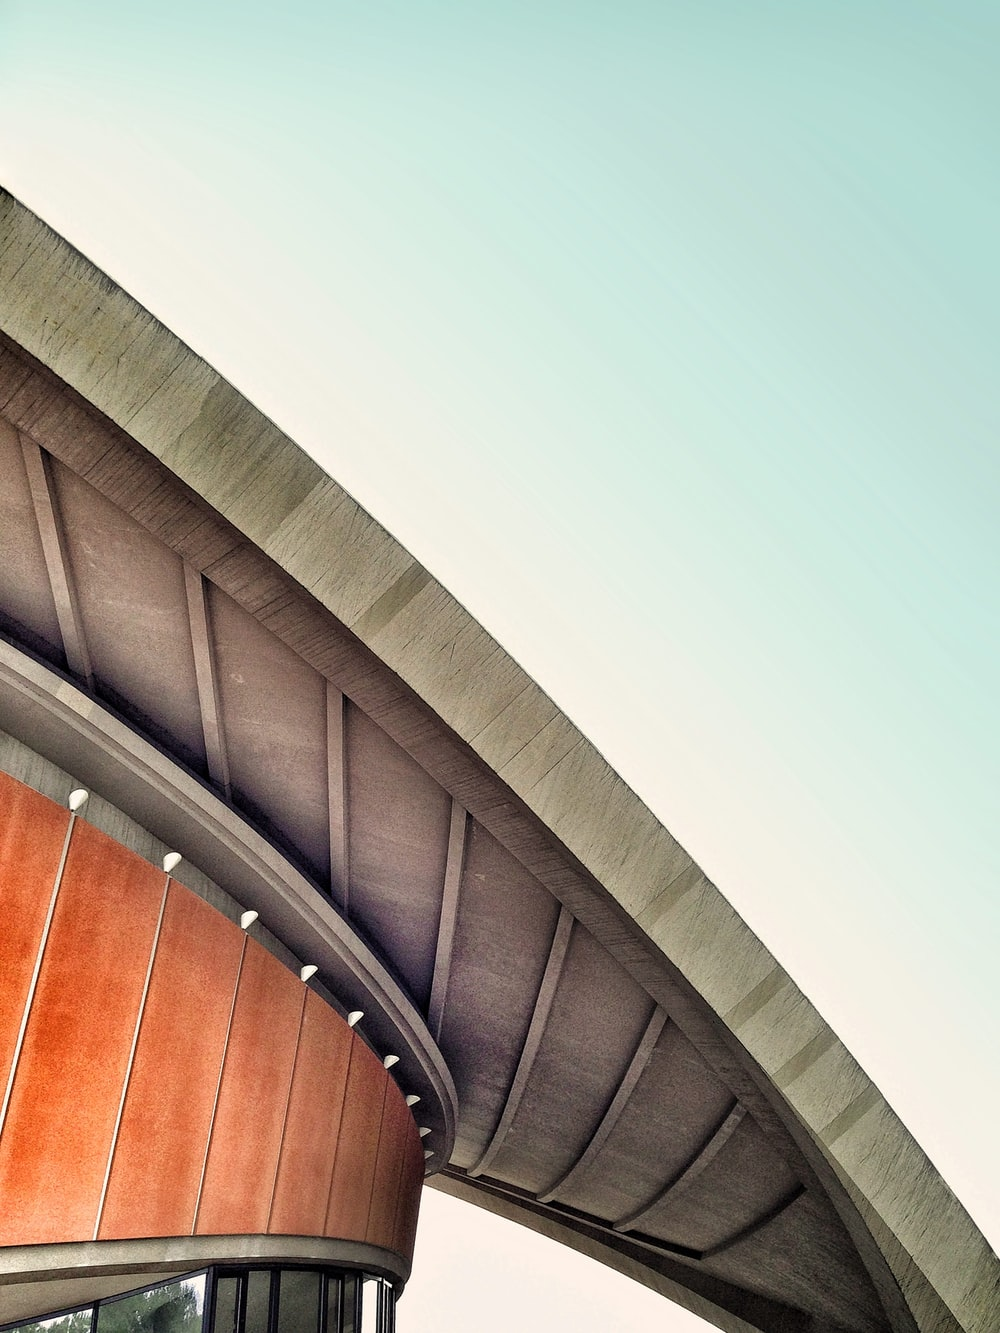 A concrete overhang in the roof of a round building